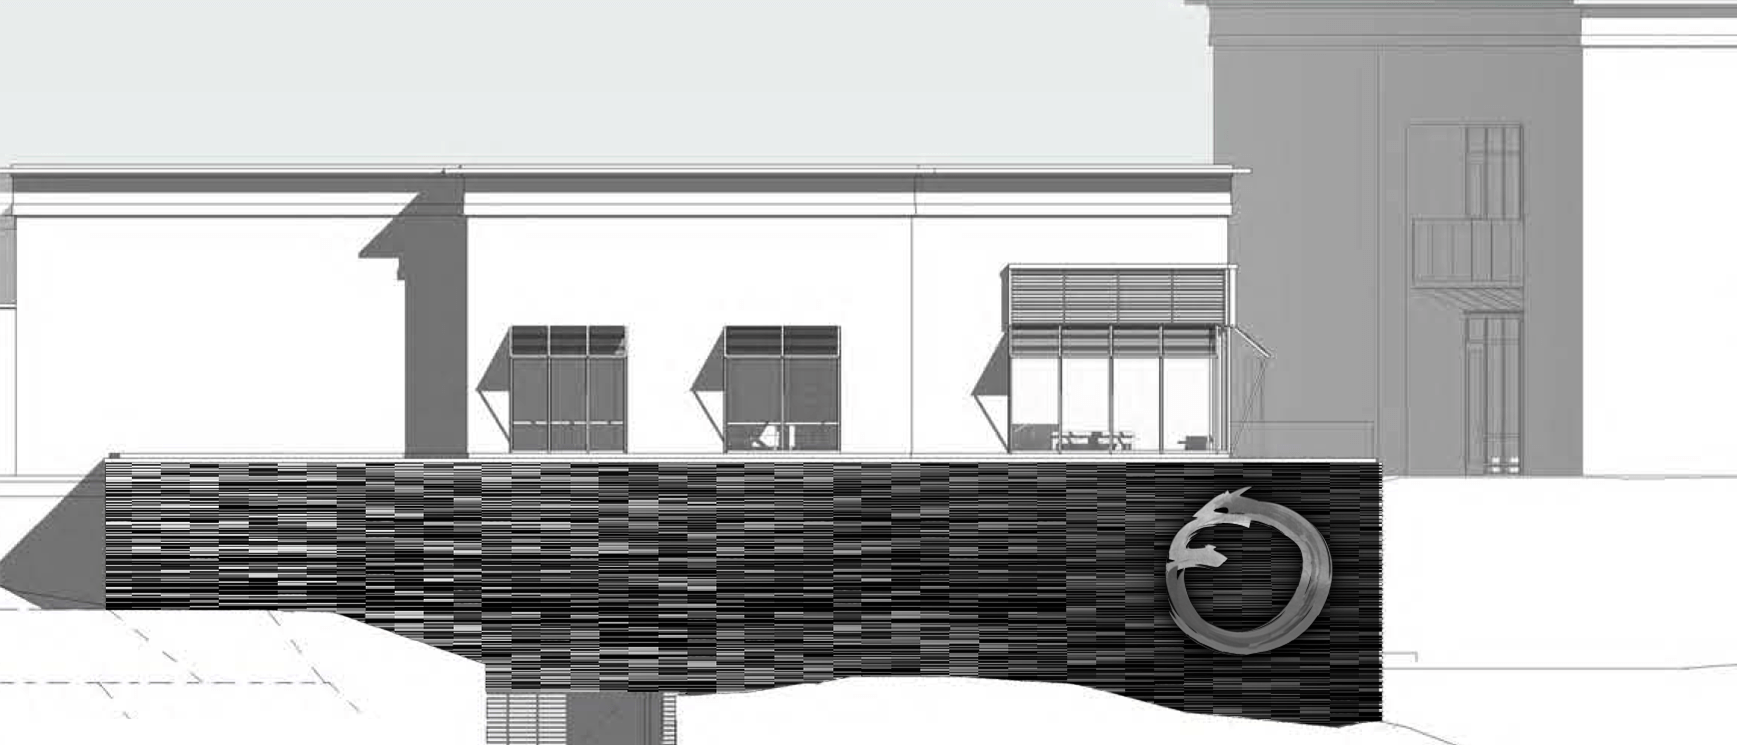 PS-west-elevation-1